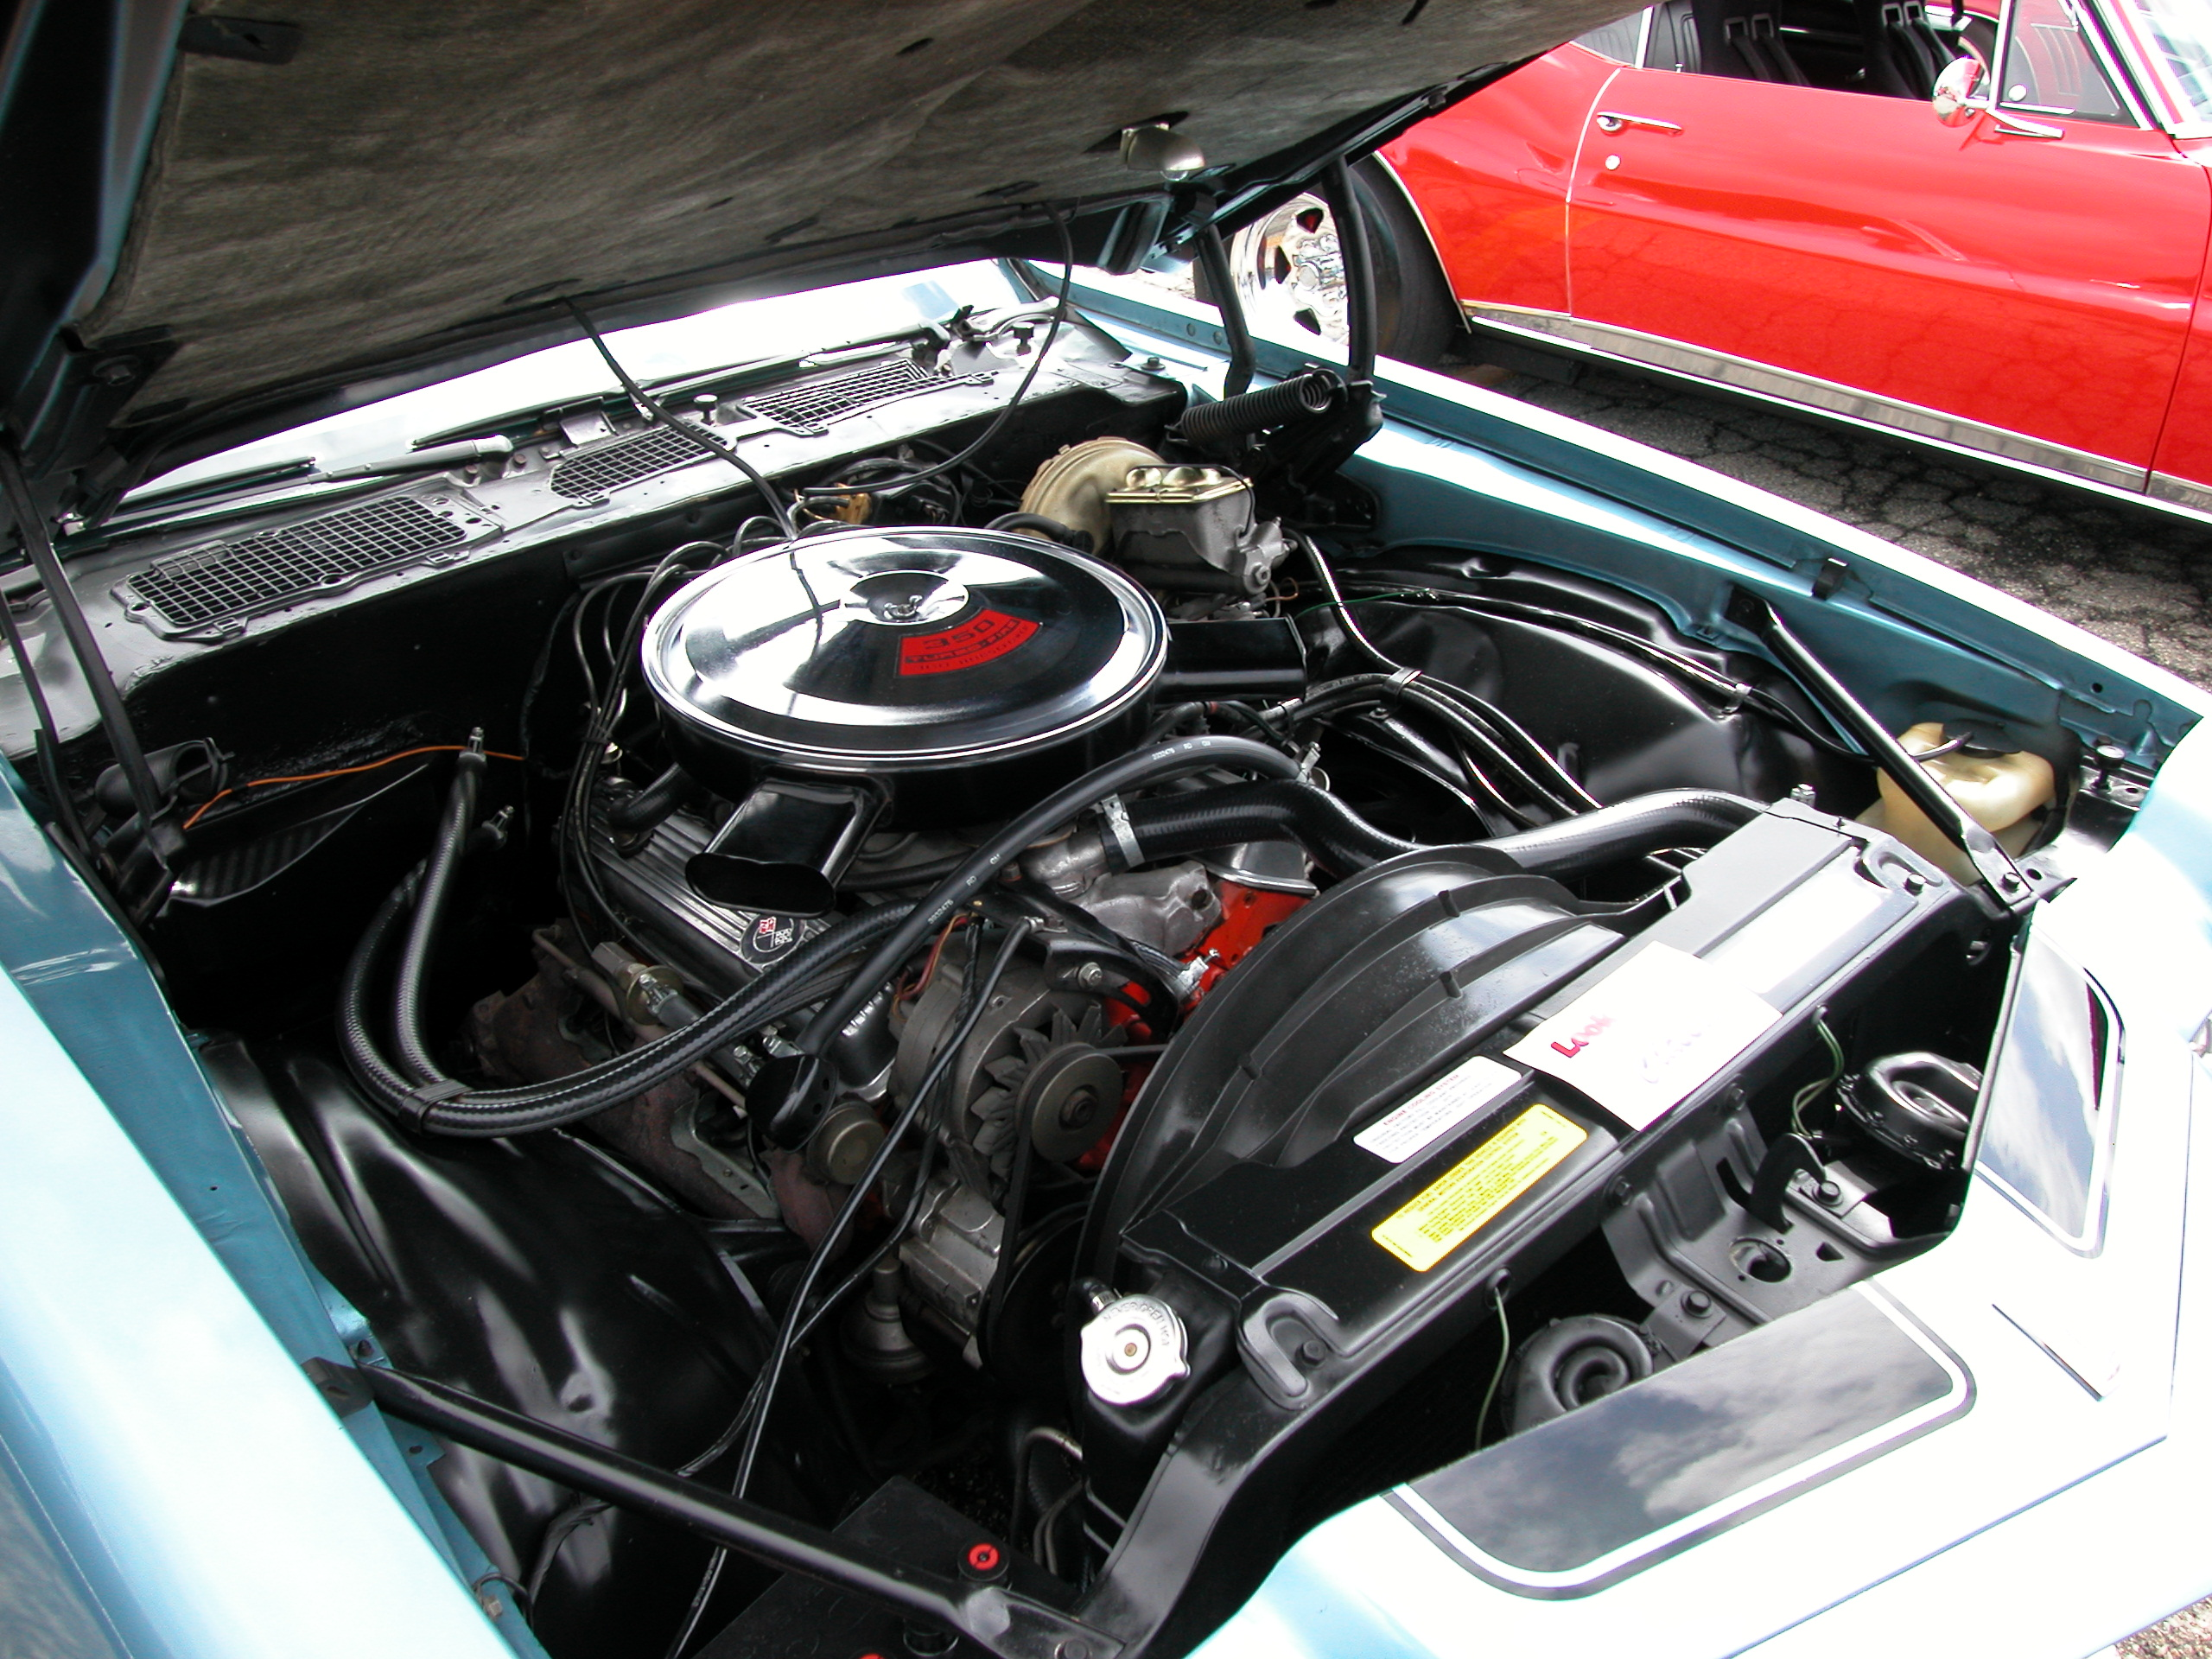 1970 chevelle malibu wiring diagram jetta mk4 stereo chevrolet small-block engine - wikiwand